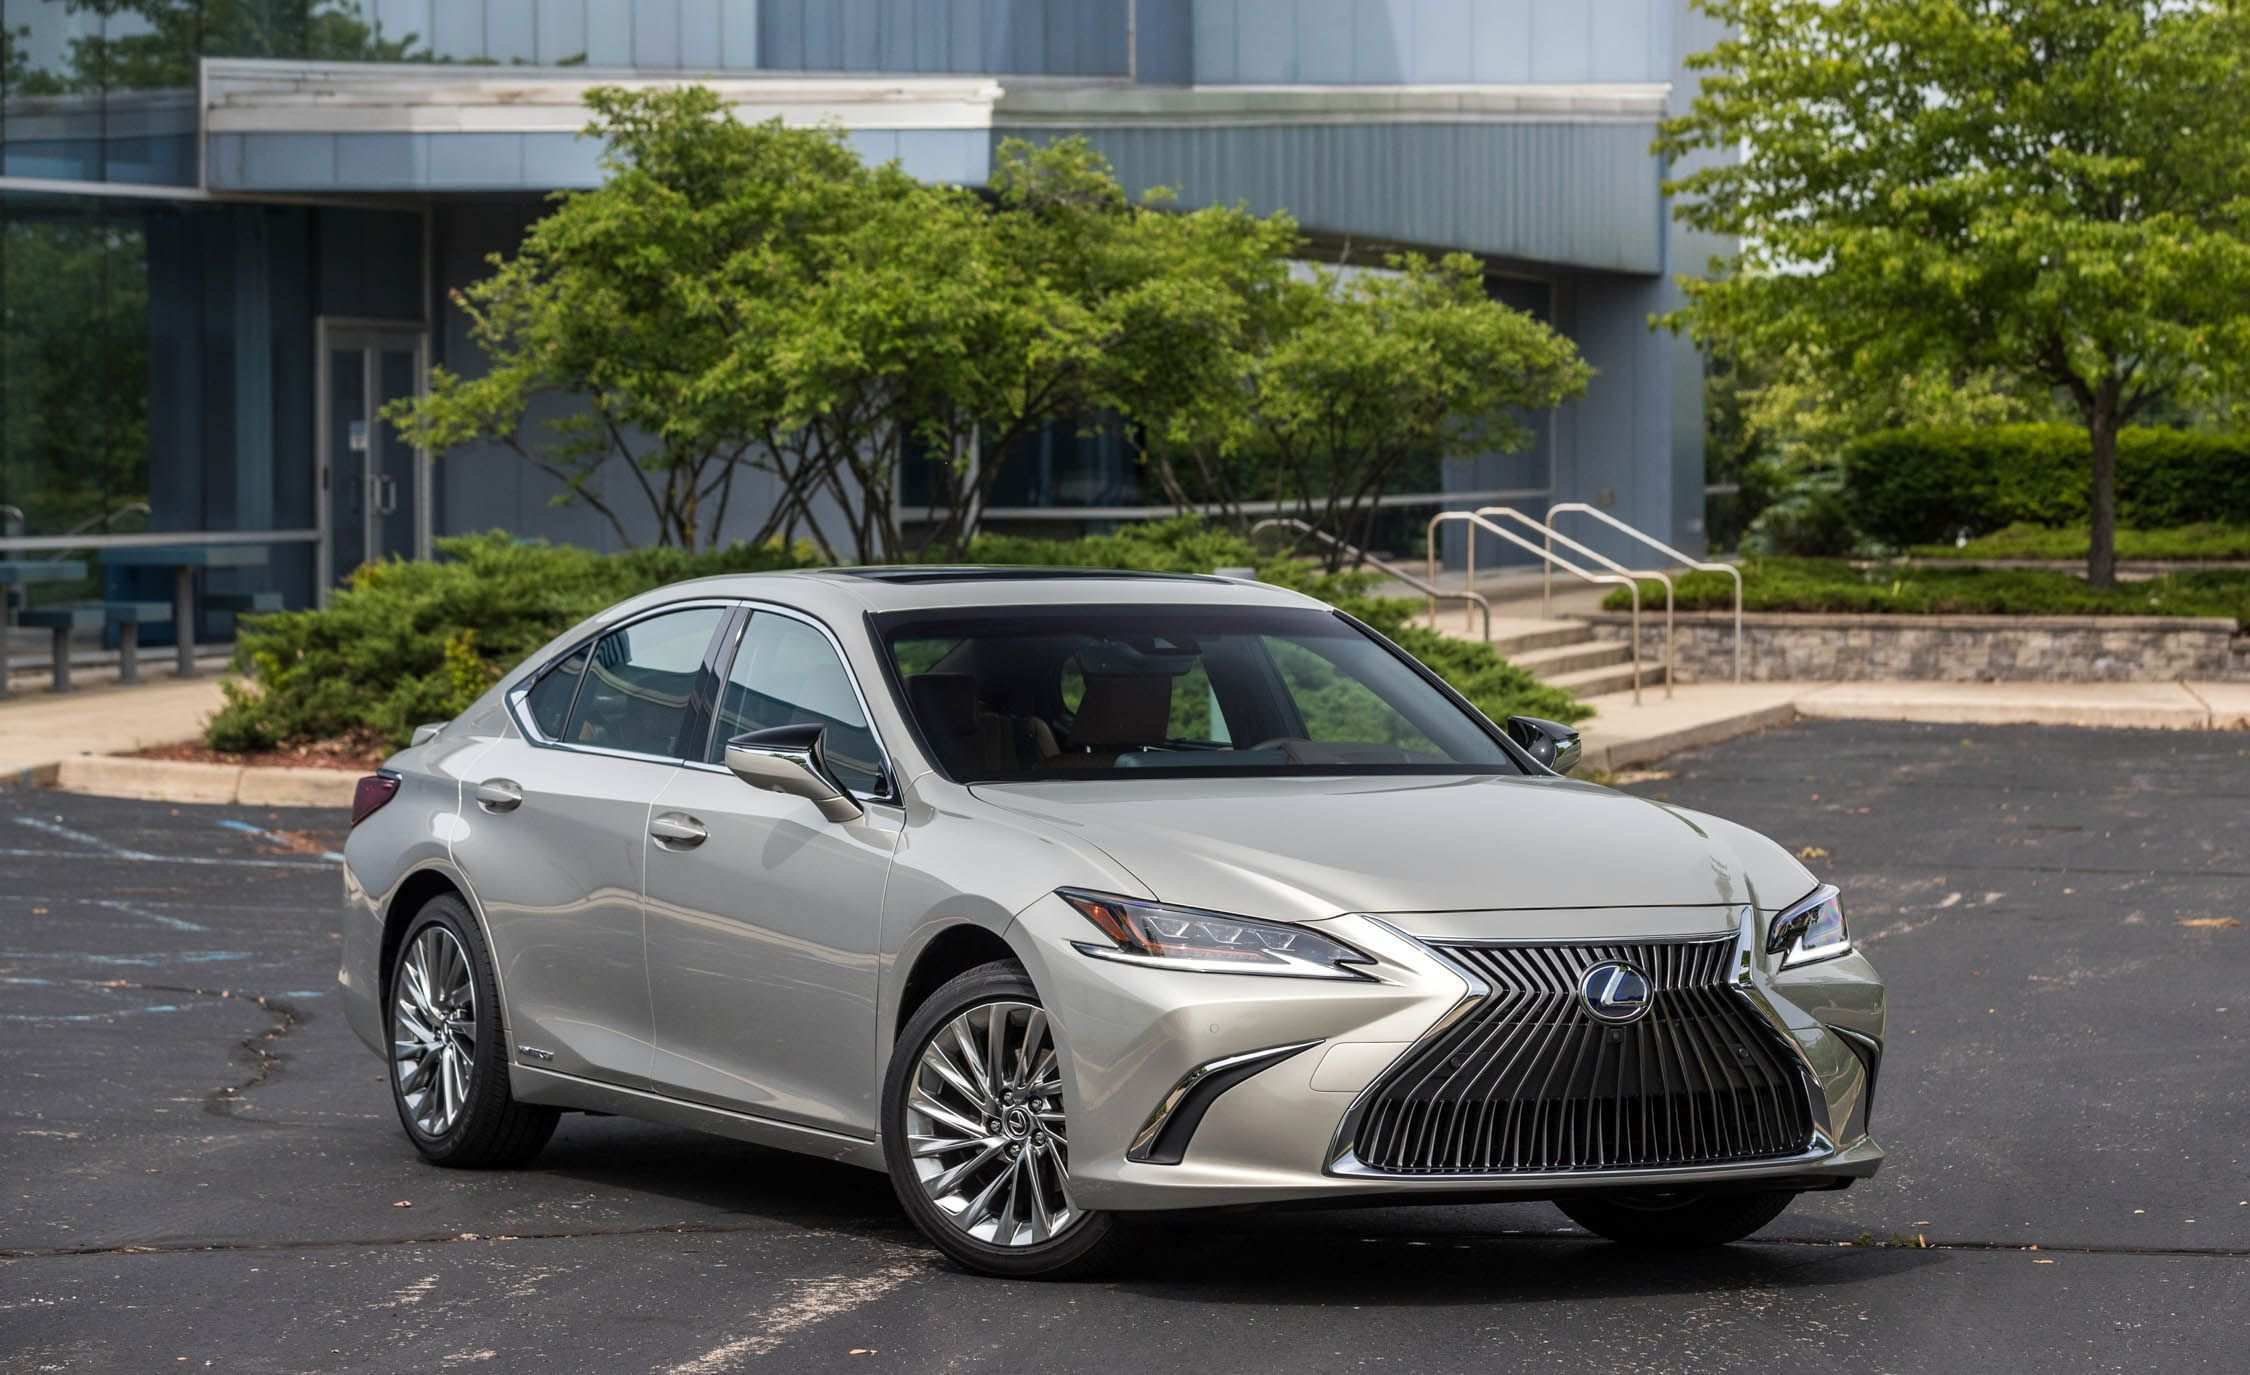 85 A Lexus Es 2020 Price And Release Date